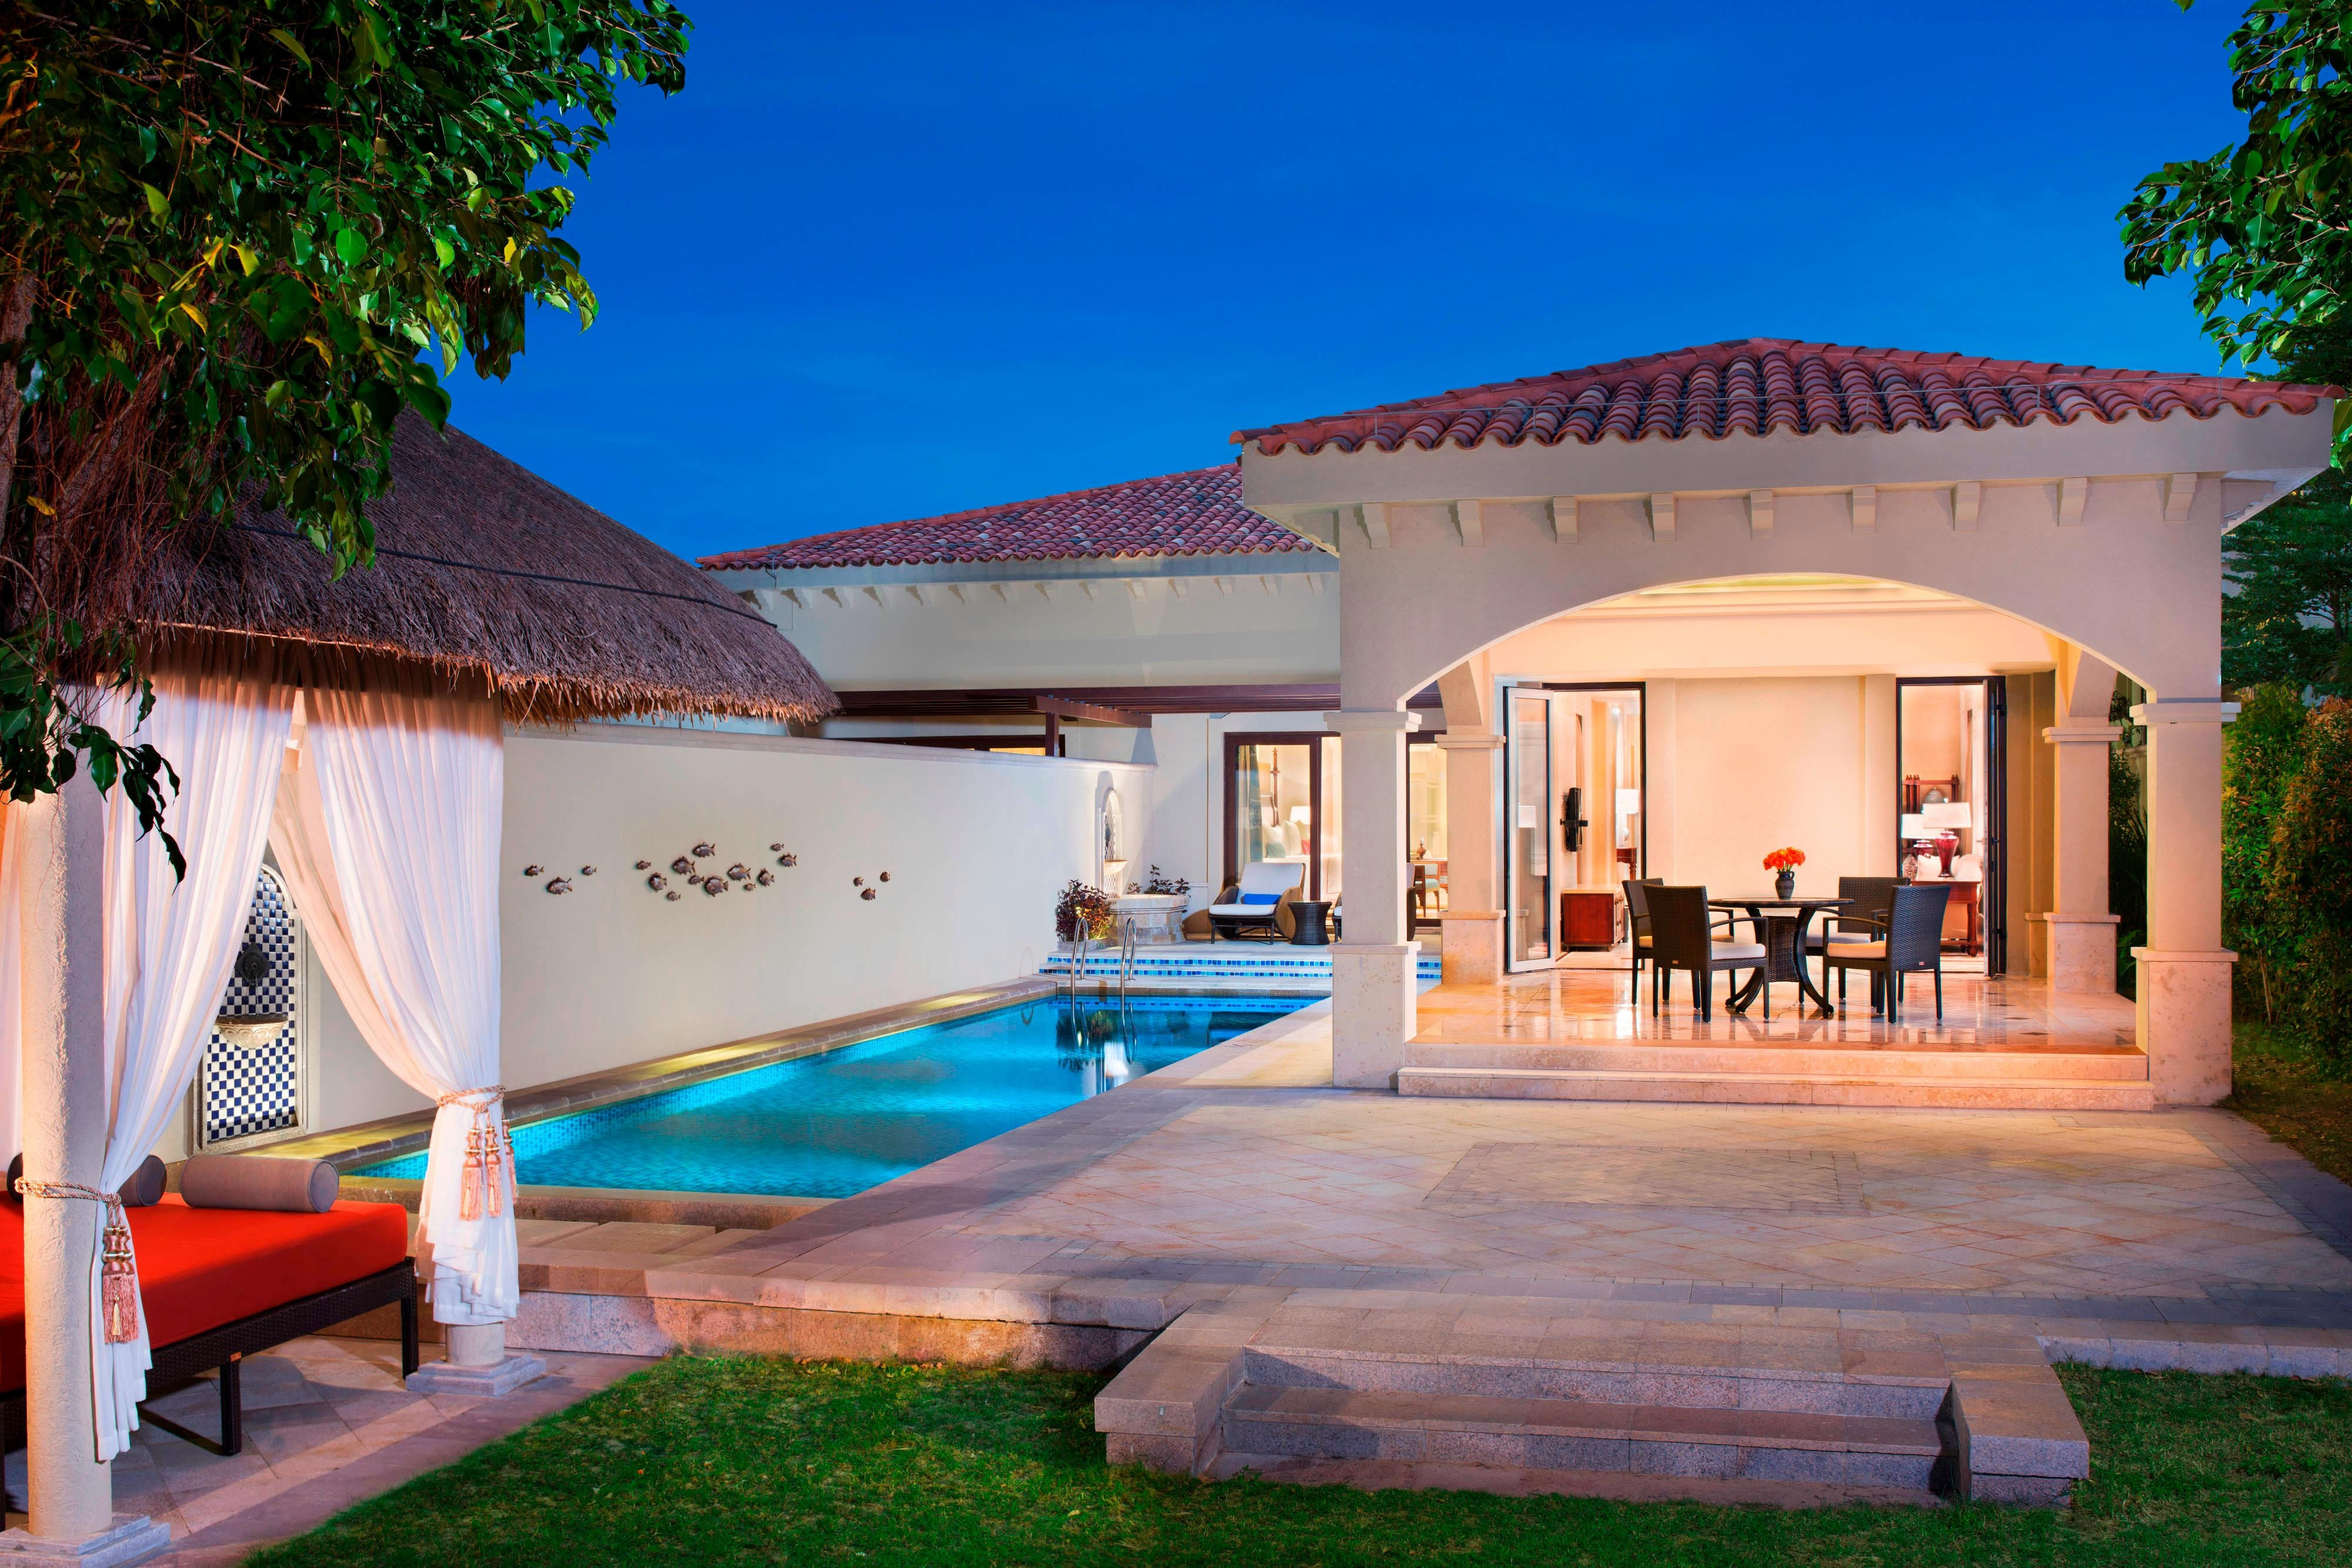 Begonia Family Two Bedroom Villa- Courtyard